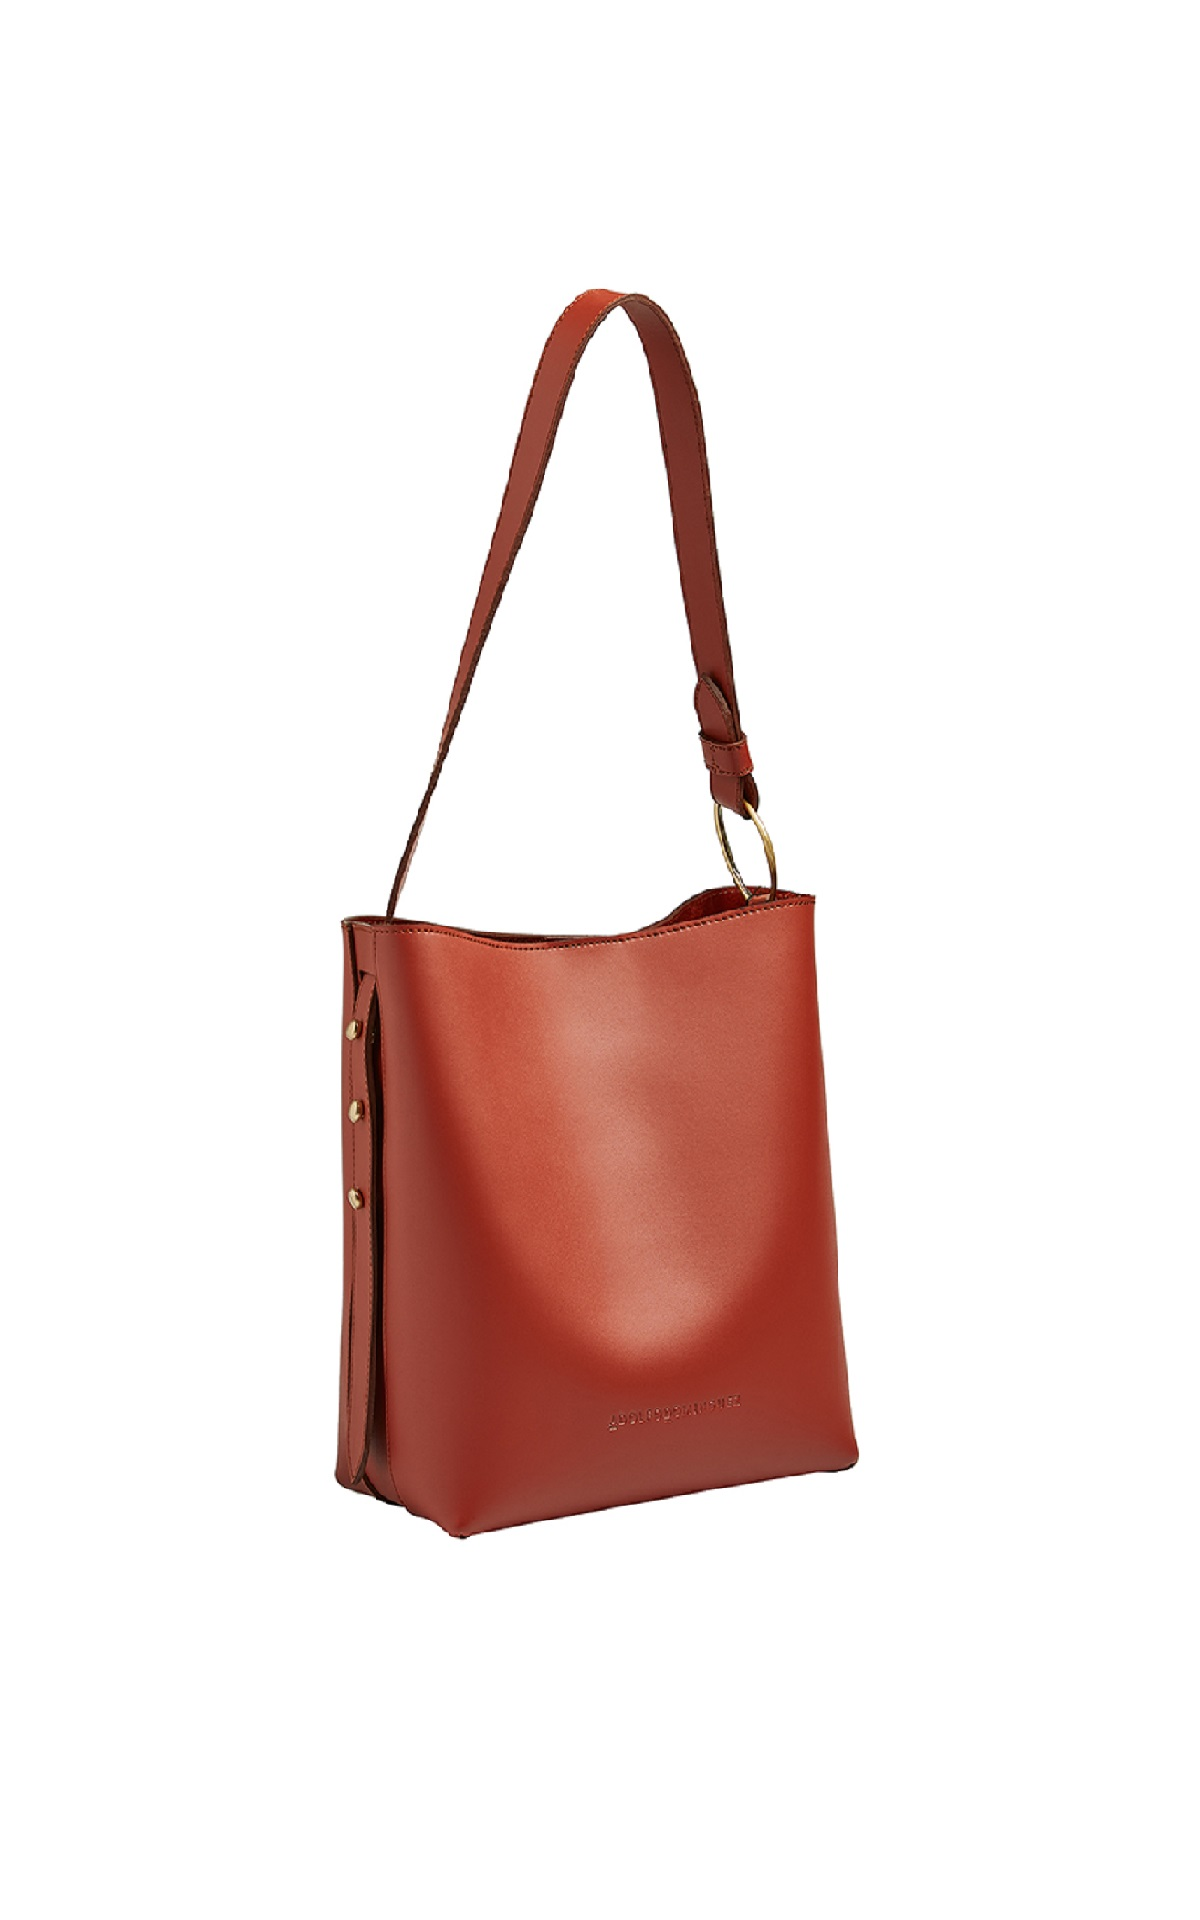 Brown leather bucket bag Adolfo Dominguez